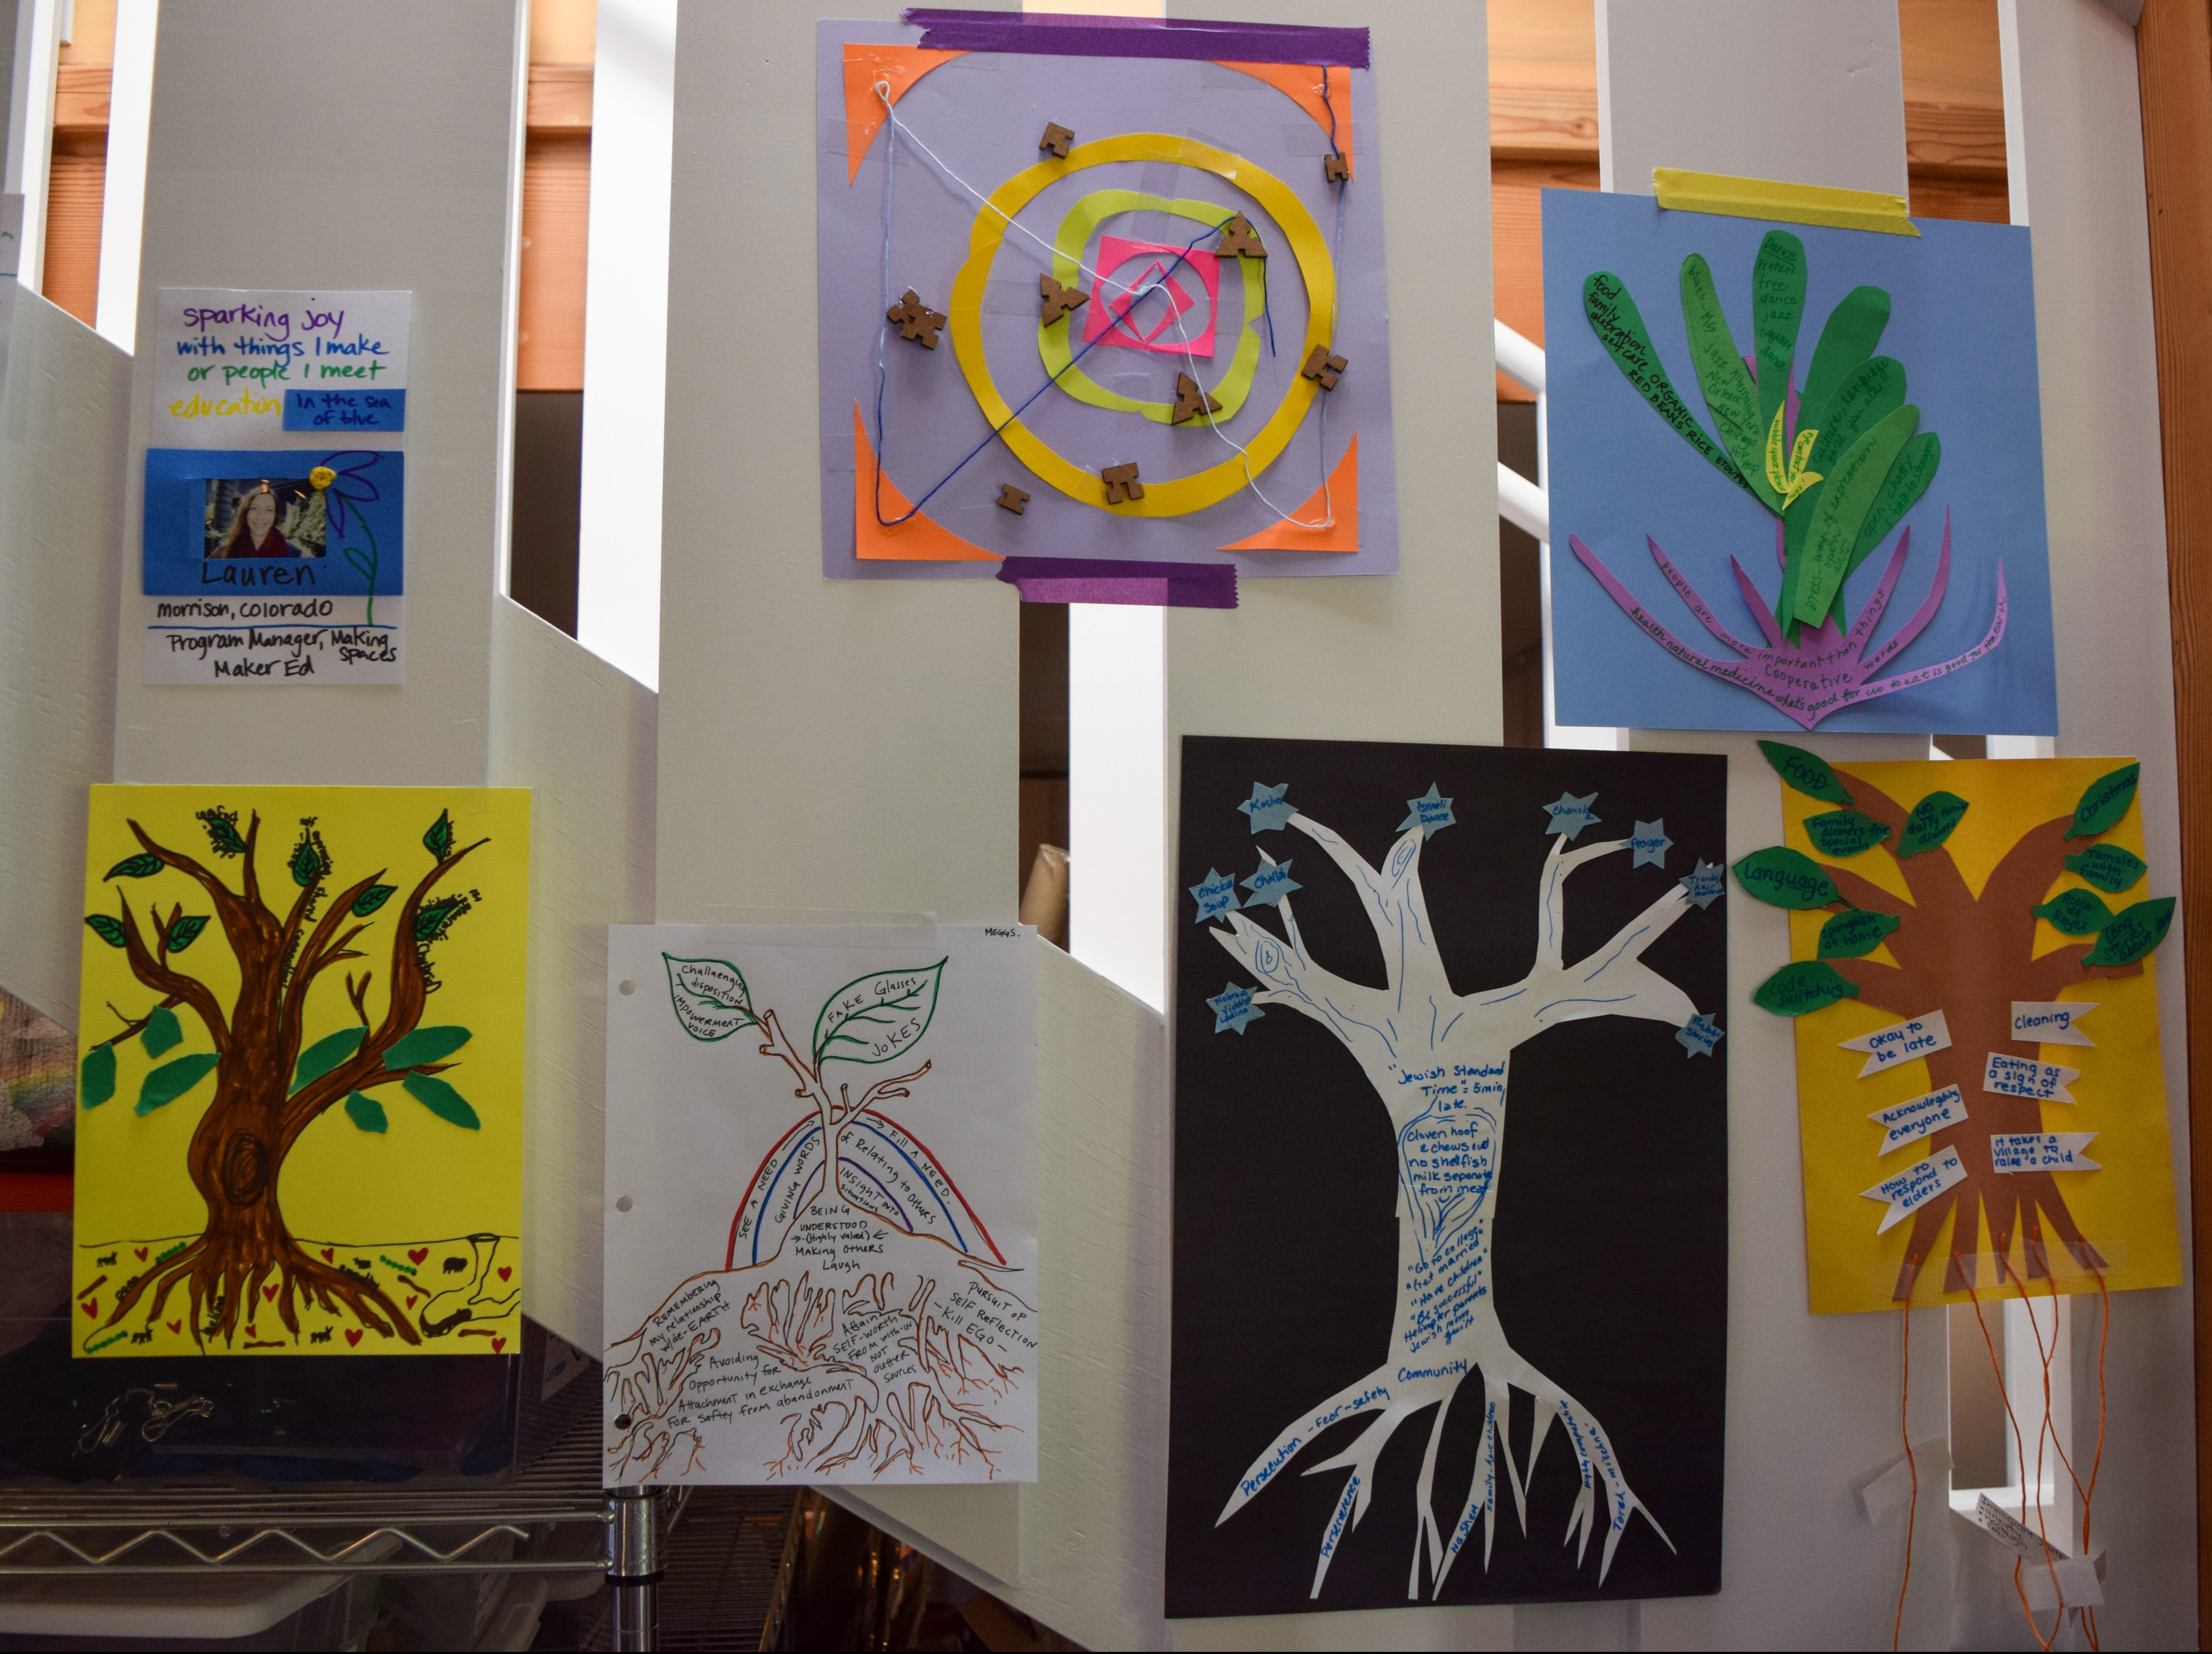 A group shot of several Culture Tree collages hanging on a stairwell.